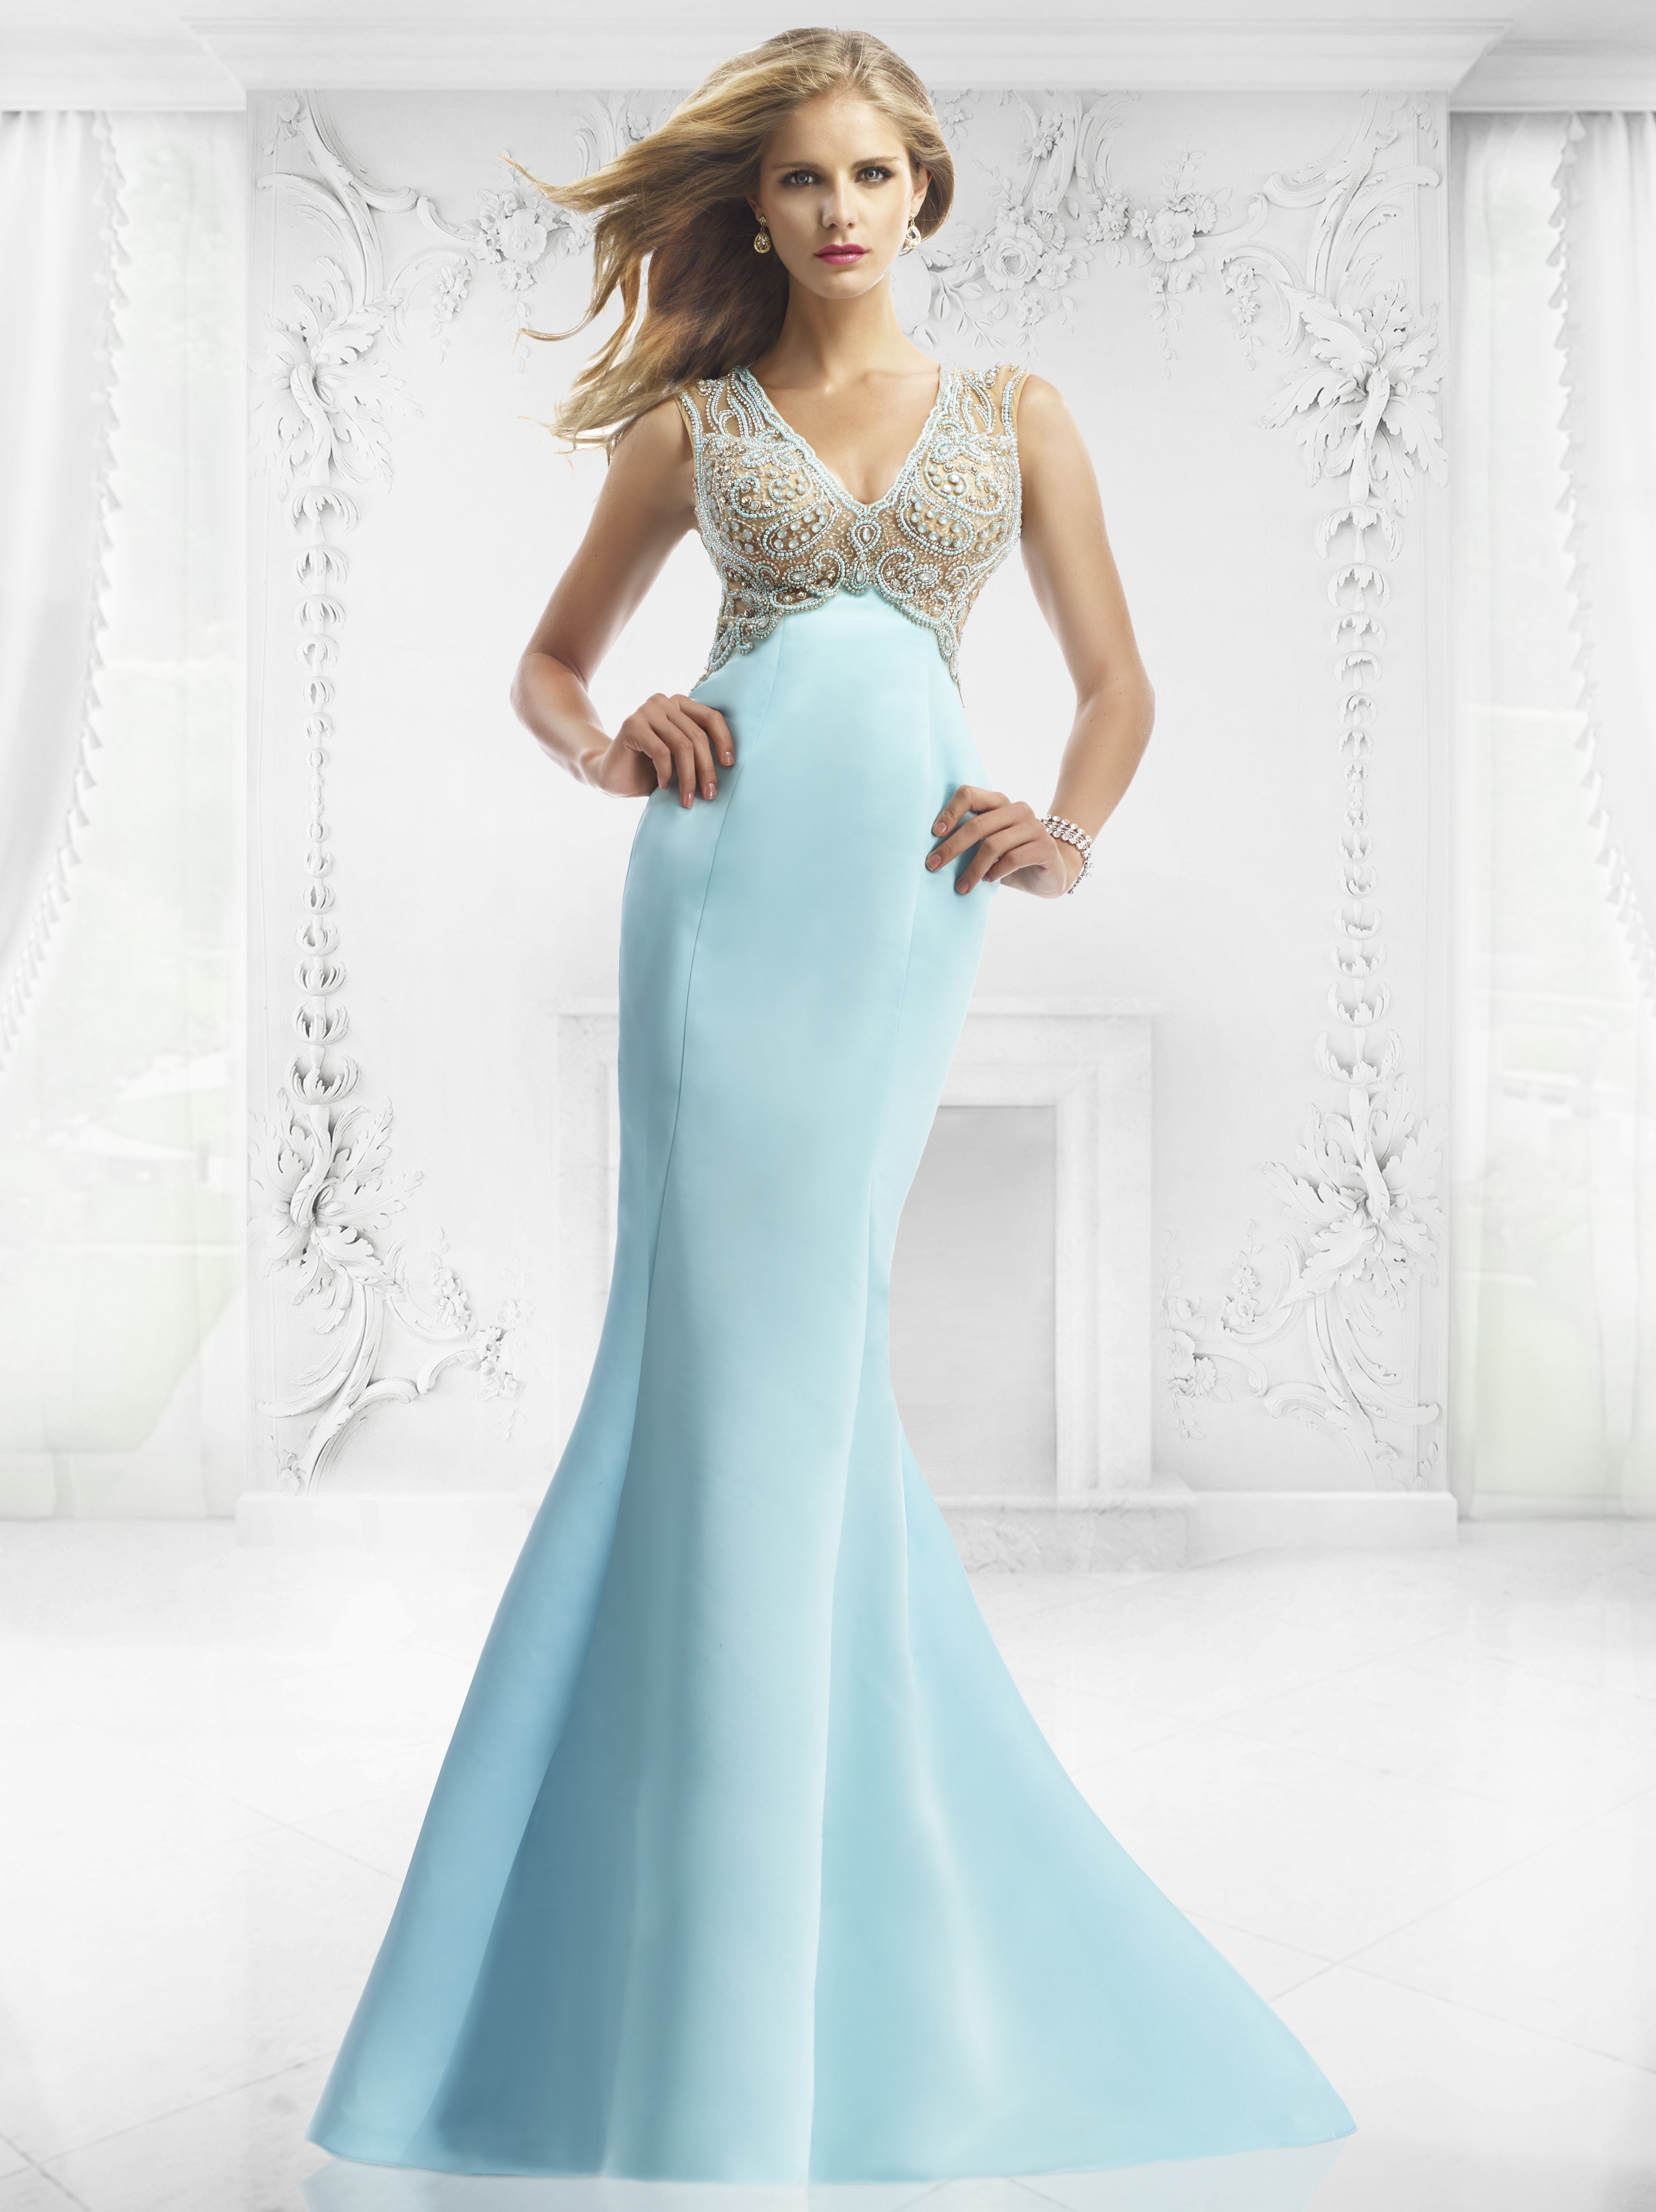 Janique 535 2015 Collection. This Beautiful dress gives off a very ...